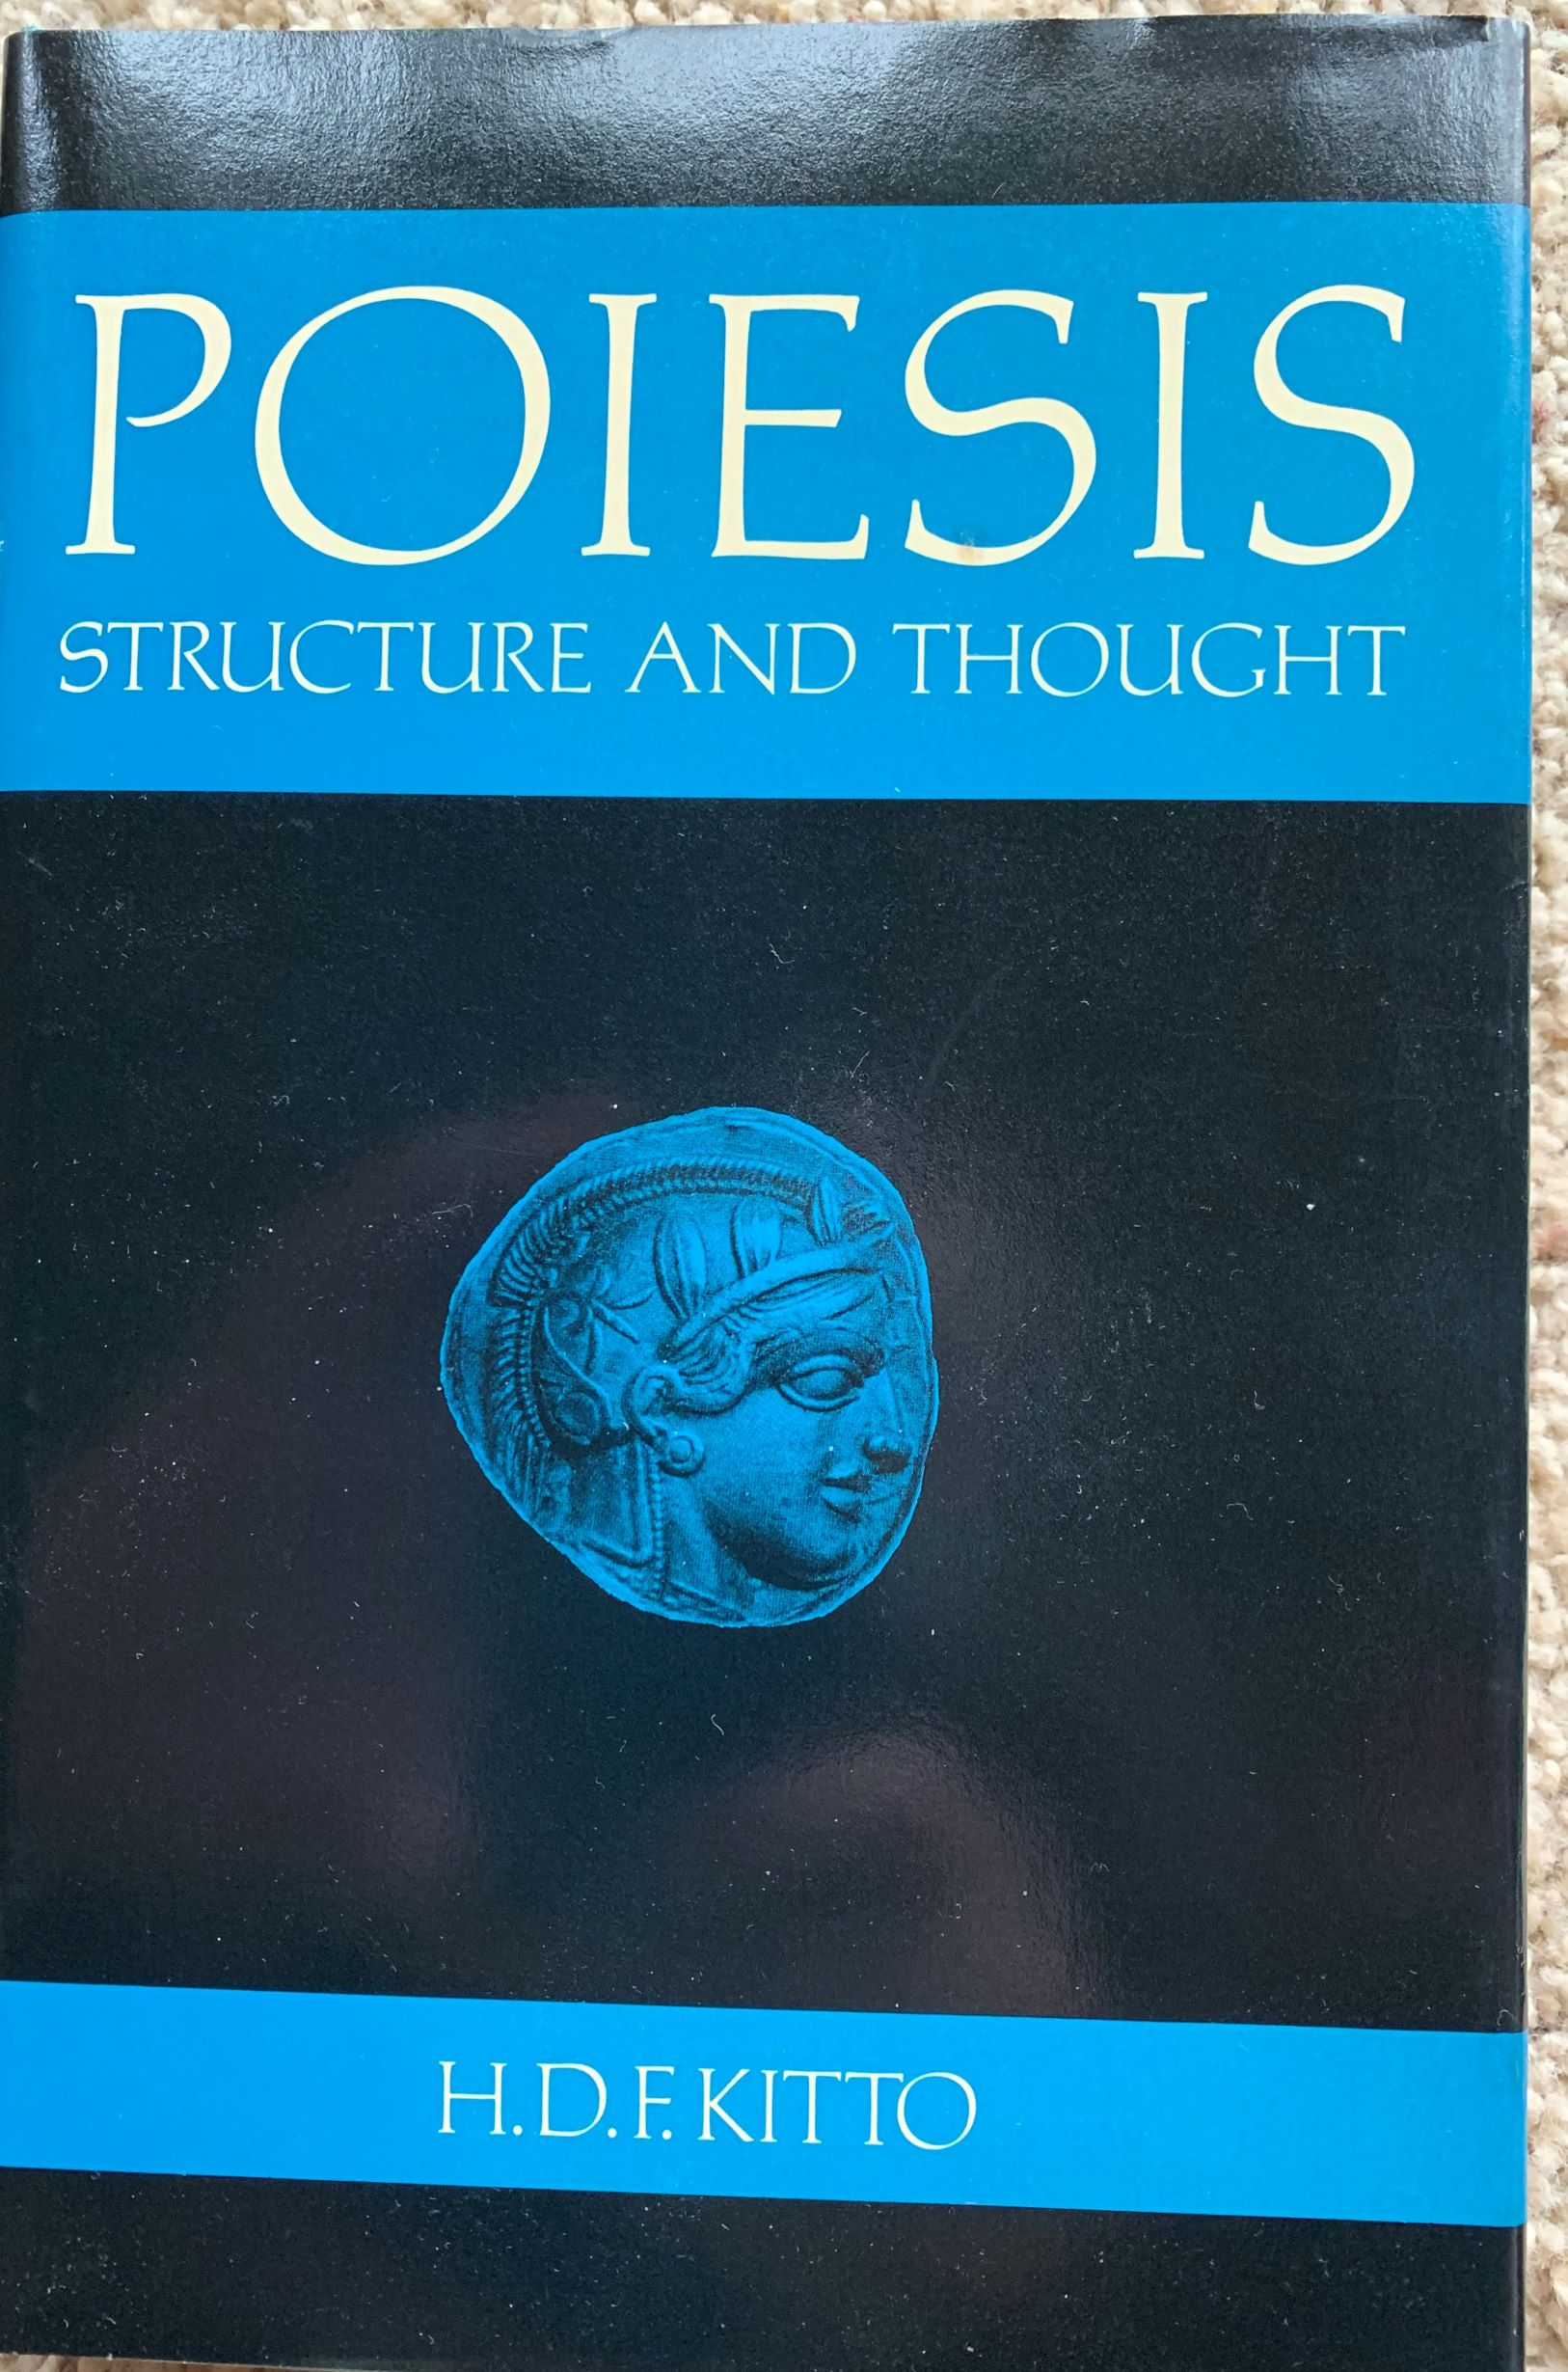 Image for Poiesis, Structure and Thought.